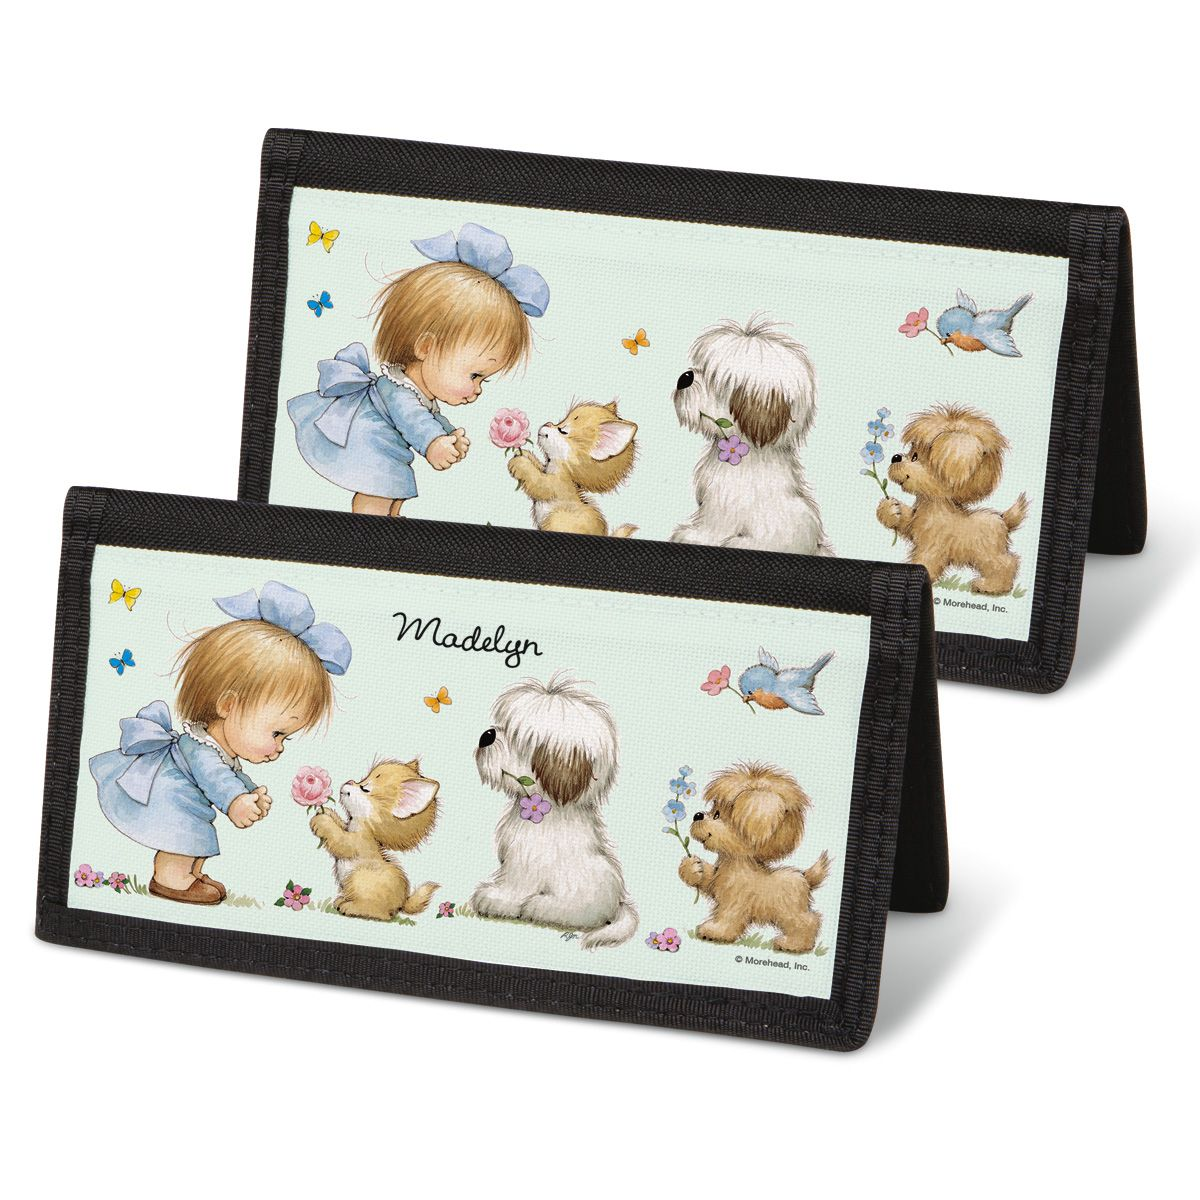 Life's Blessing Checkbook Covers